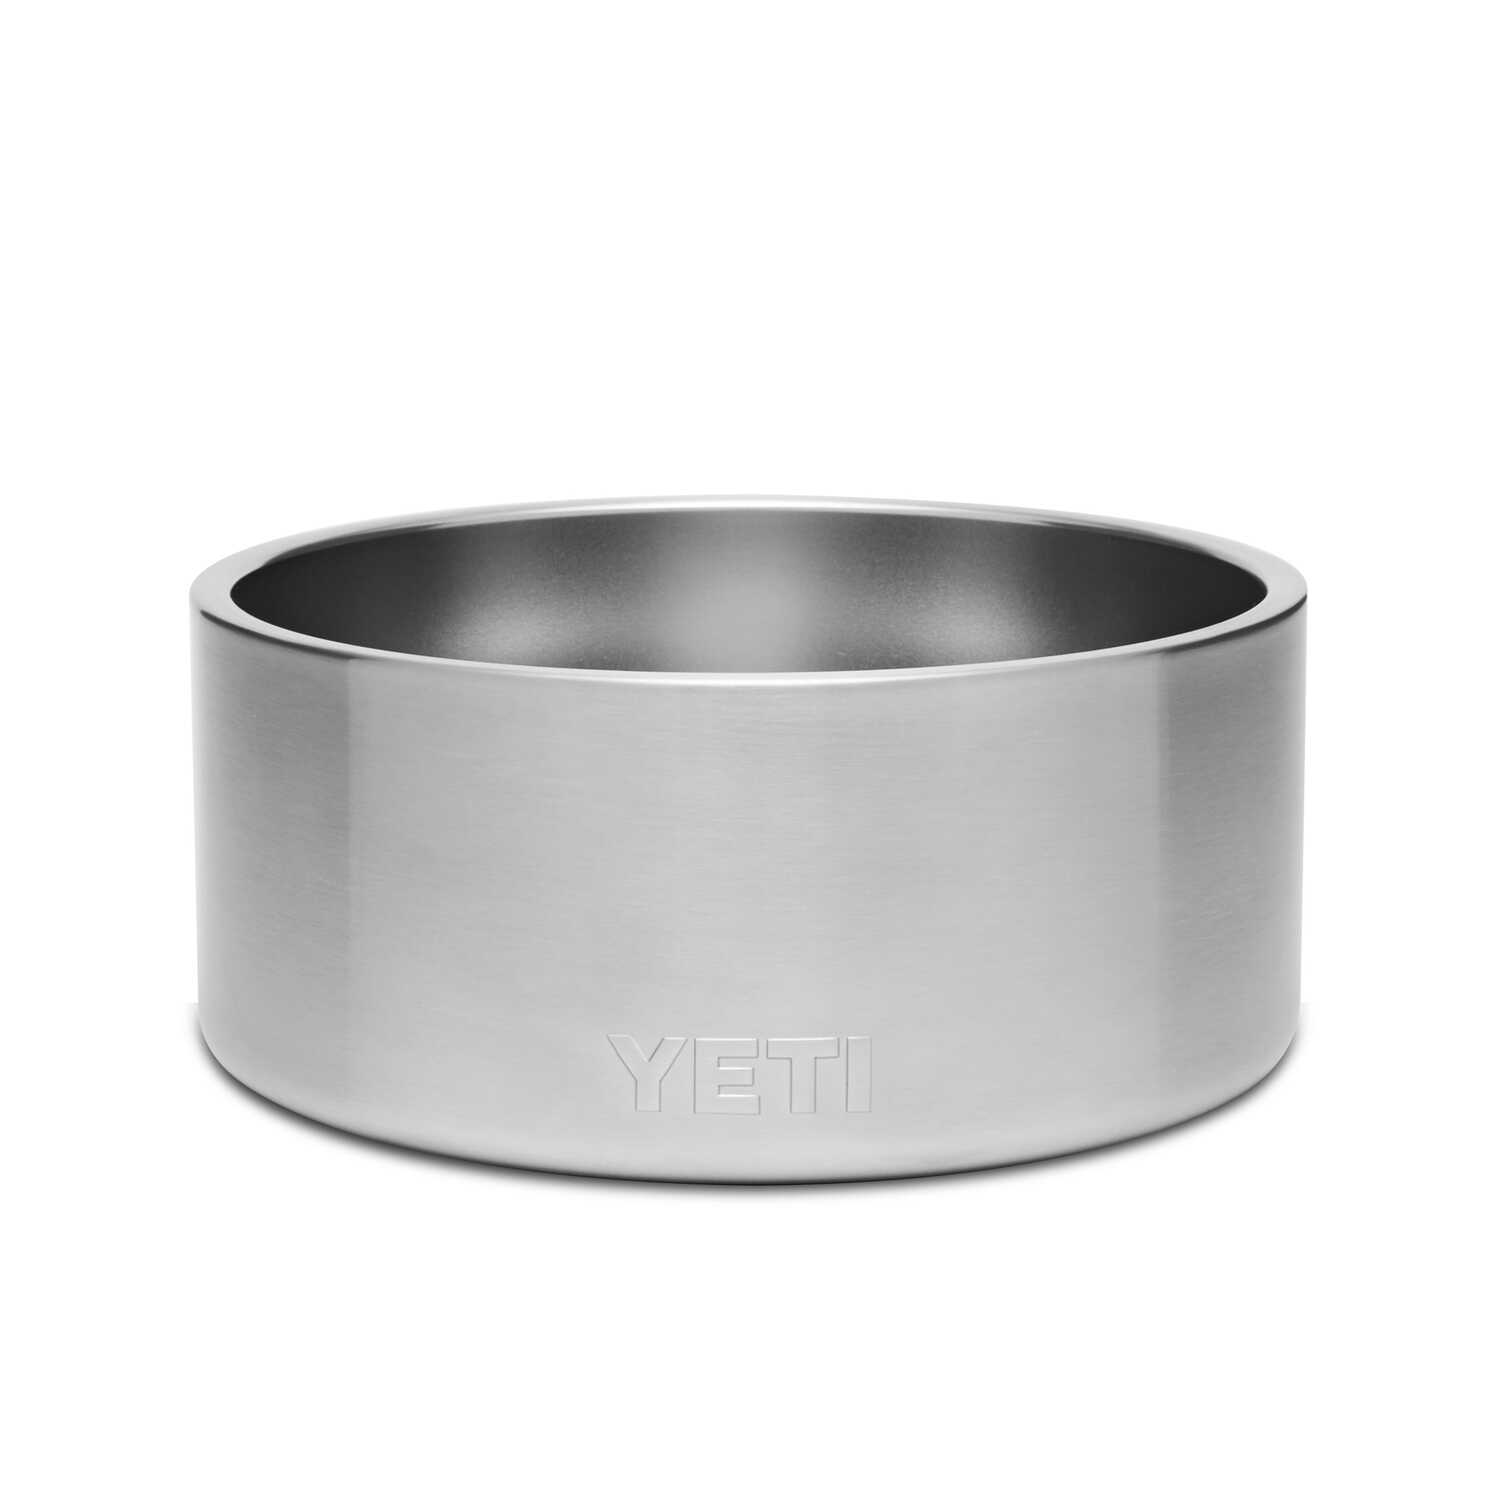 YETI  Boomer  Silver  Stainless Steel  8 cup Pet Bowl  For Dogs